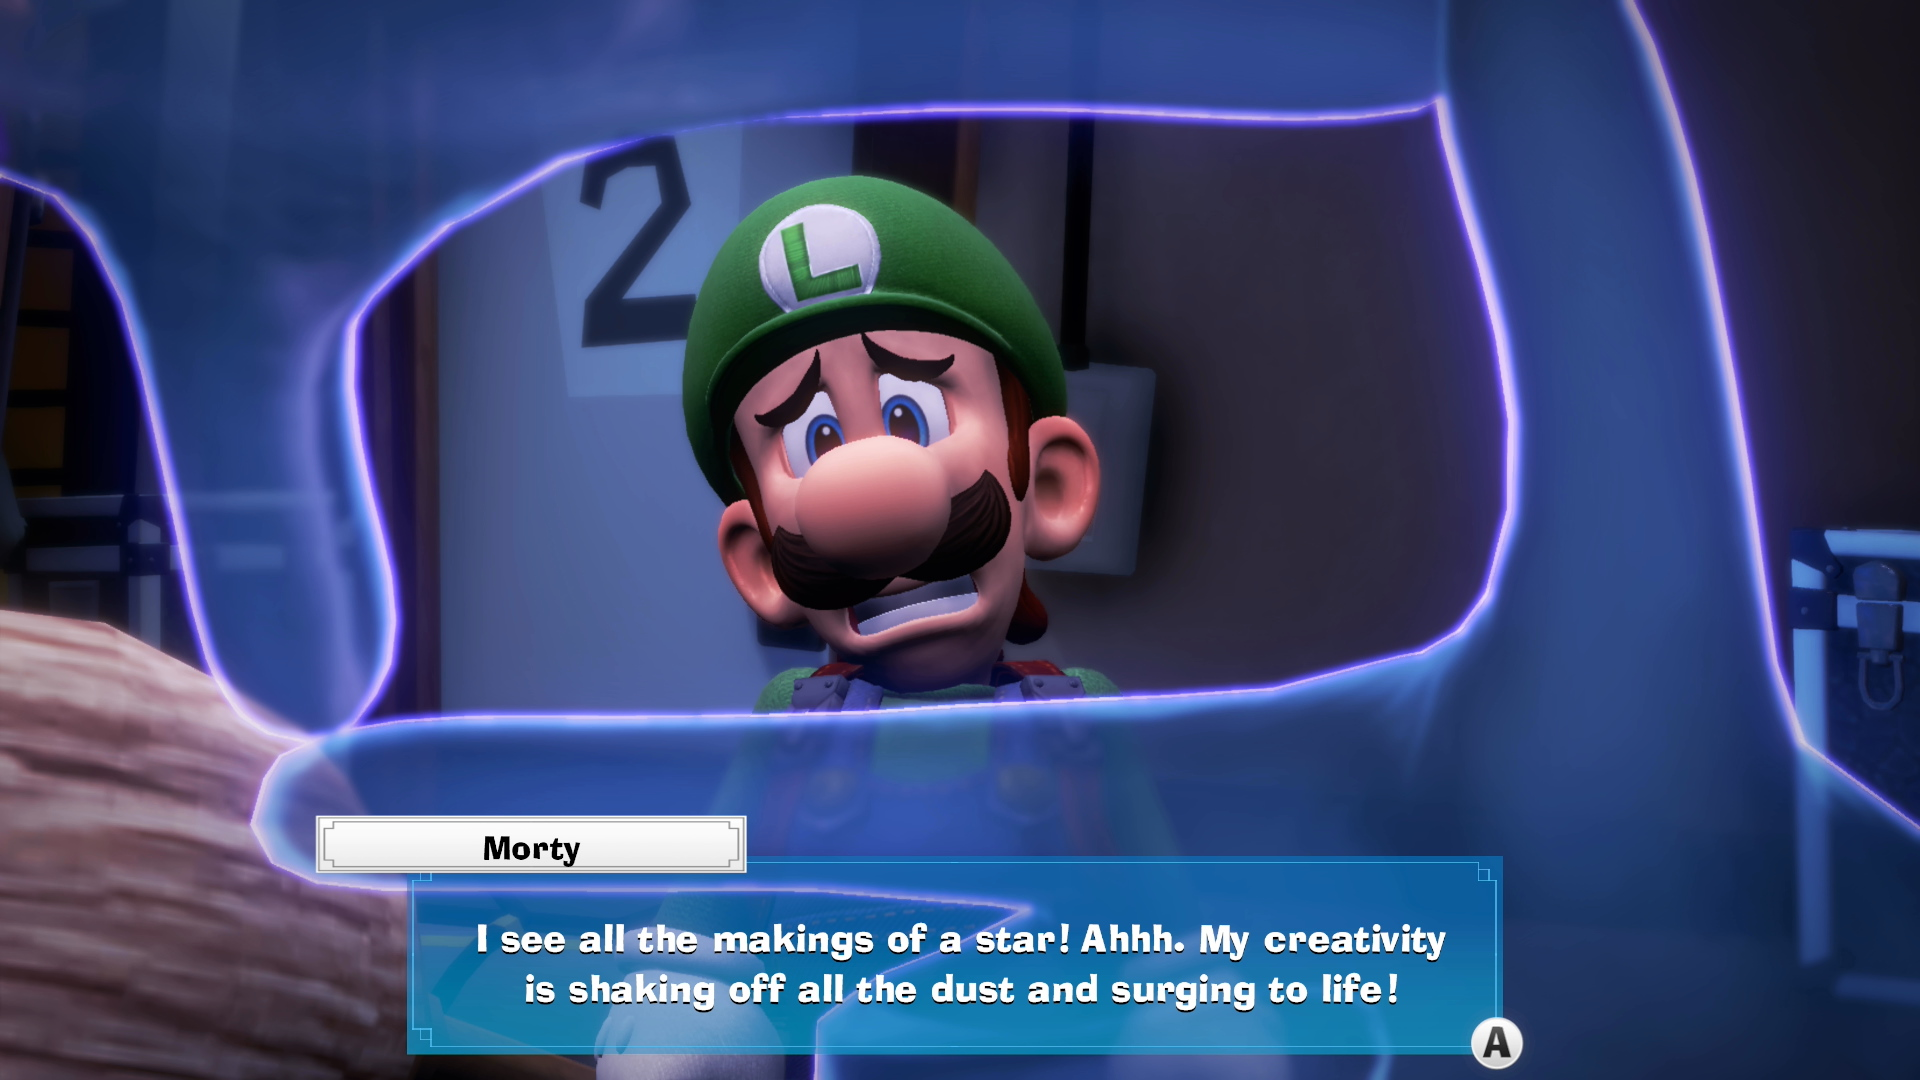 Luigi's Mansion 3: A screenshot showing dialogue